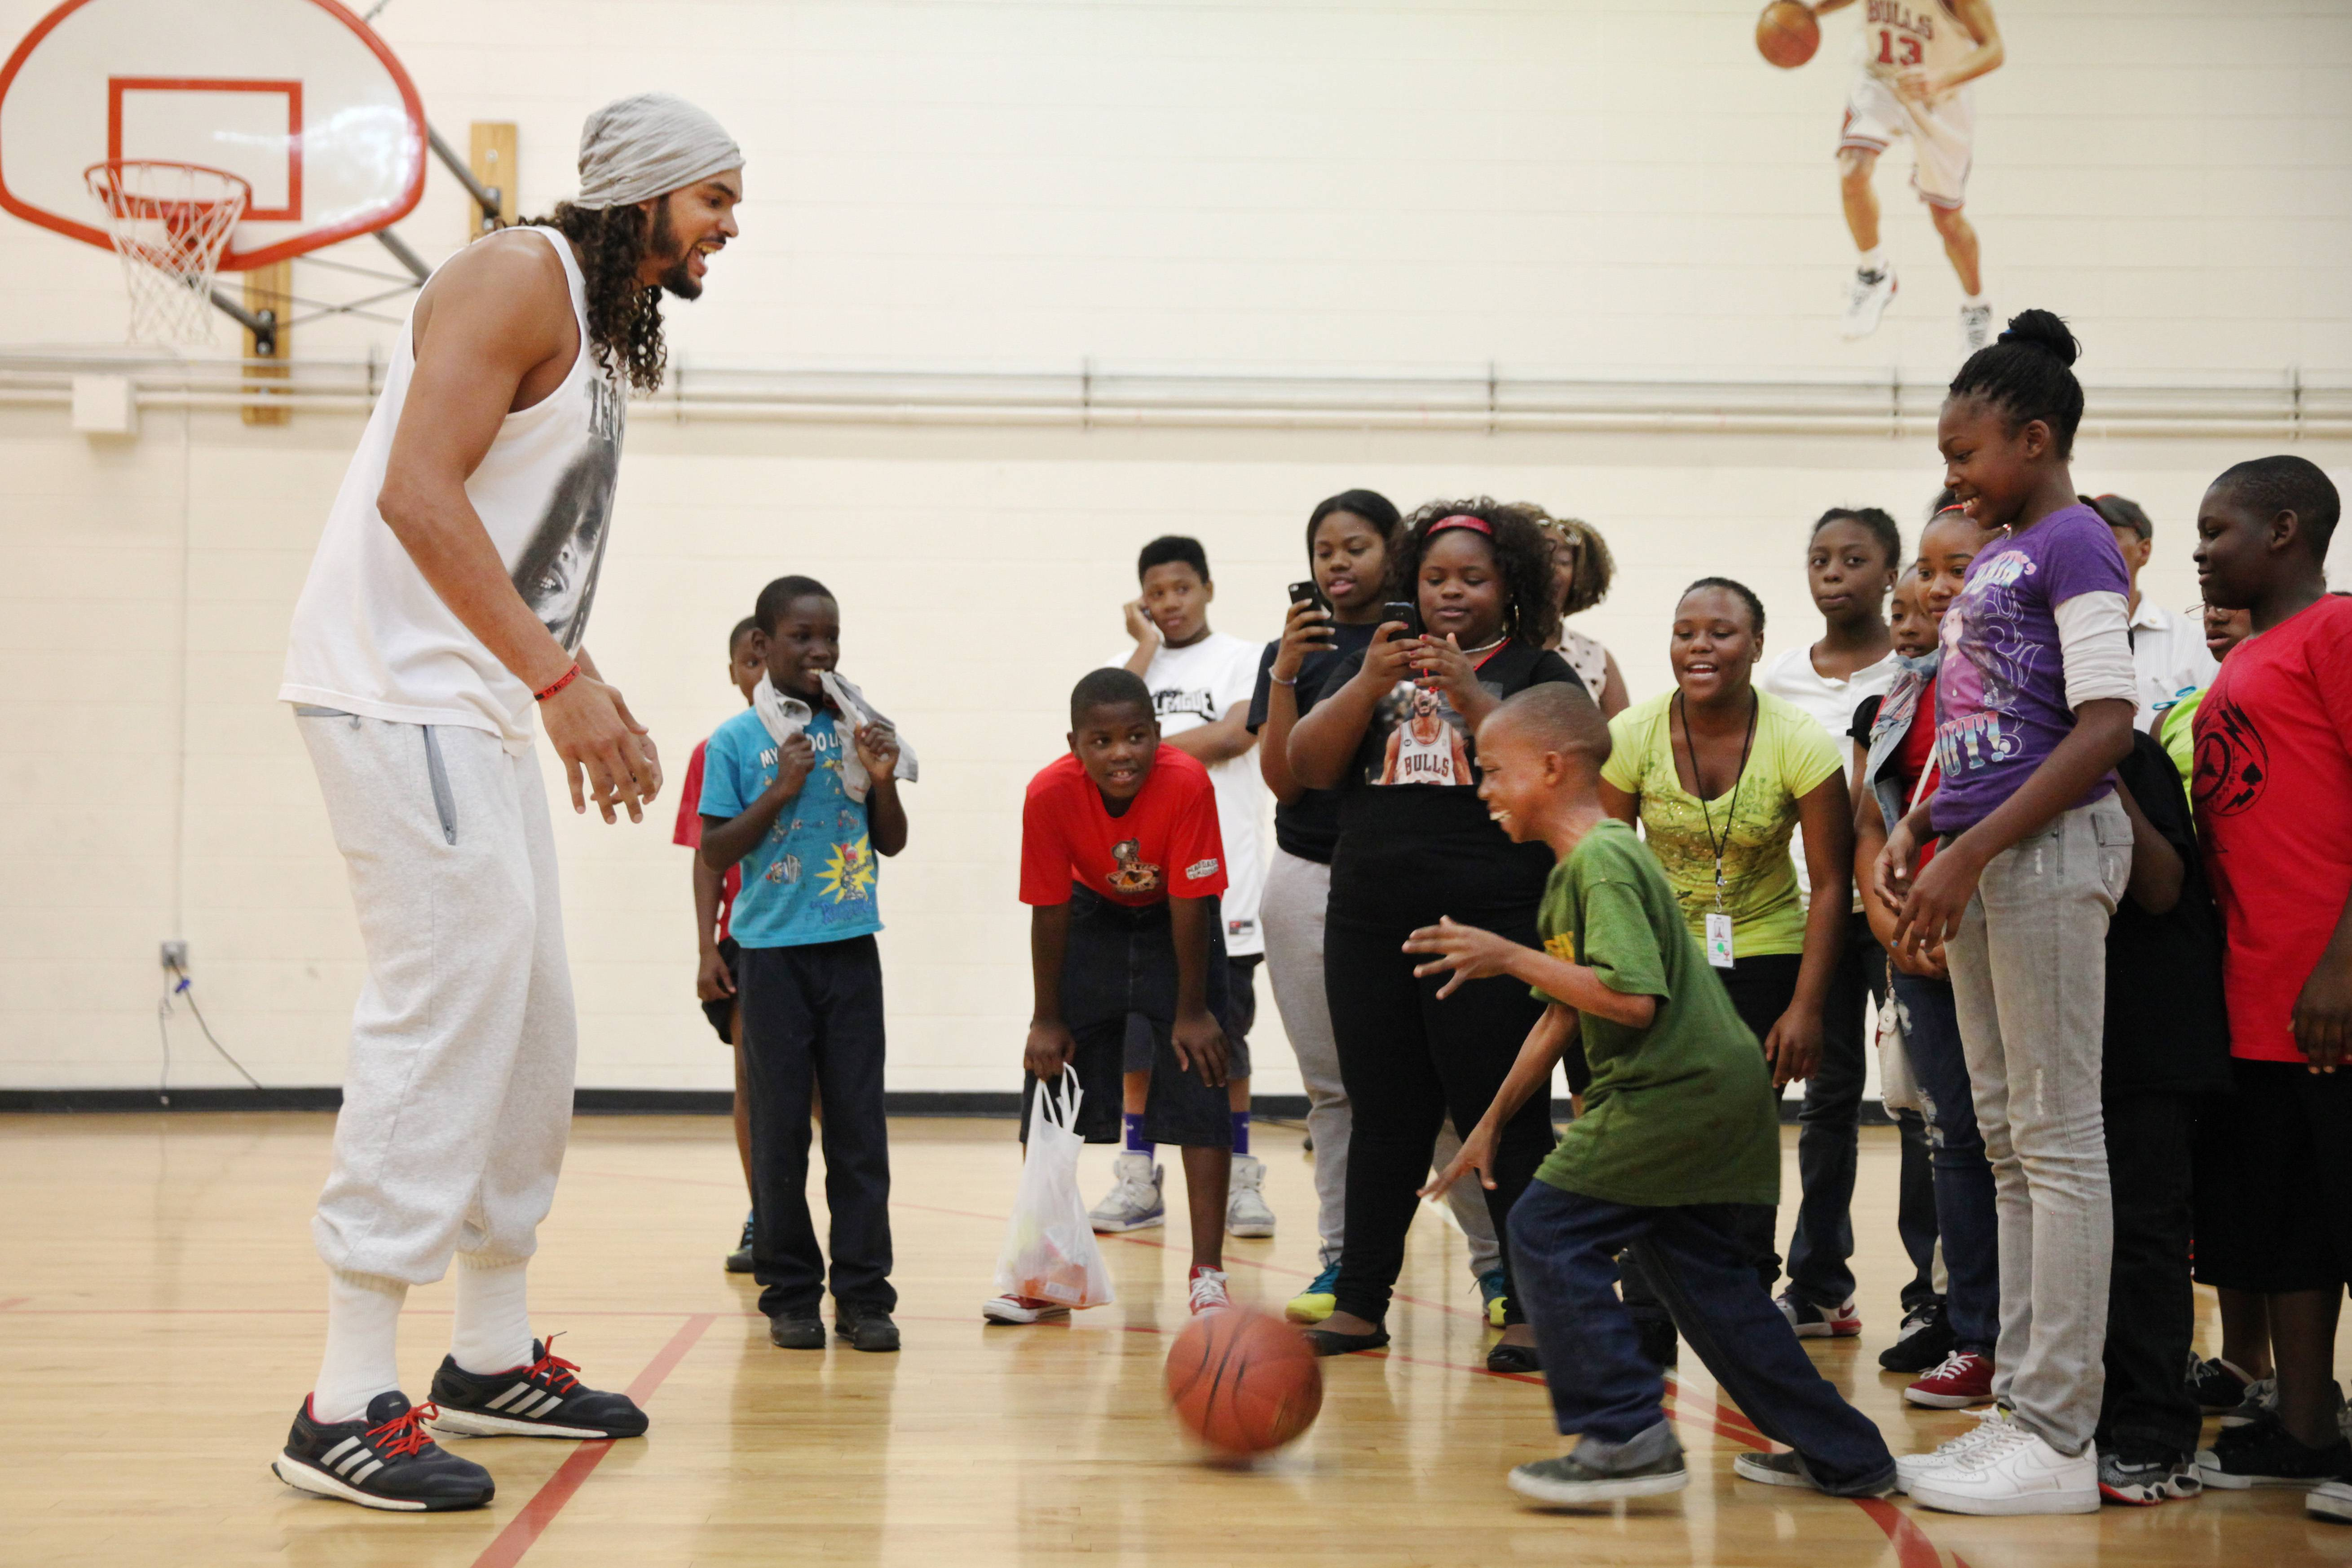 Chicago Bulls NBA All-Star Joakim Noah plays basketball with kids after speaking to the media about fighting gun violence in the city through his Noahs Arc Foundation, at Major Adams Community Center on Friday, July 25, 2014 in Chicago. Noah has unveiled an effort to tamp down the city's gun violence, including a public service announcement in which he stars.